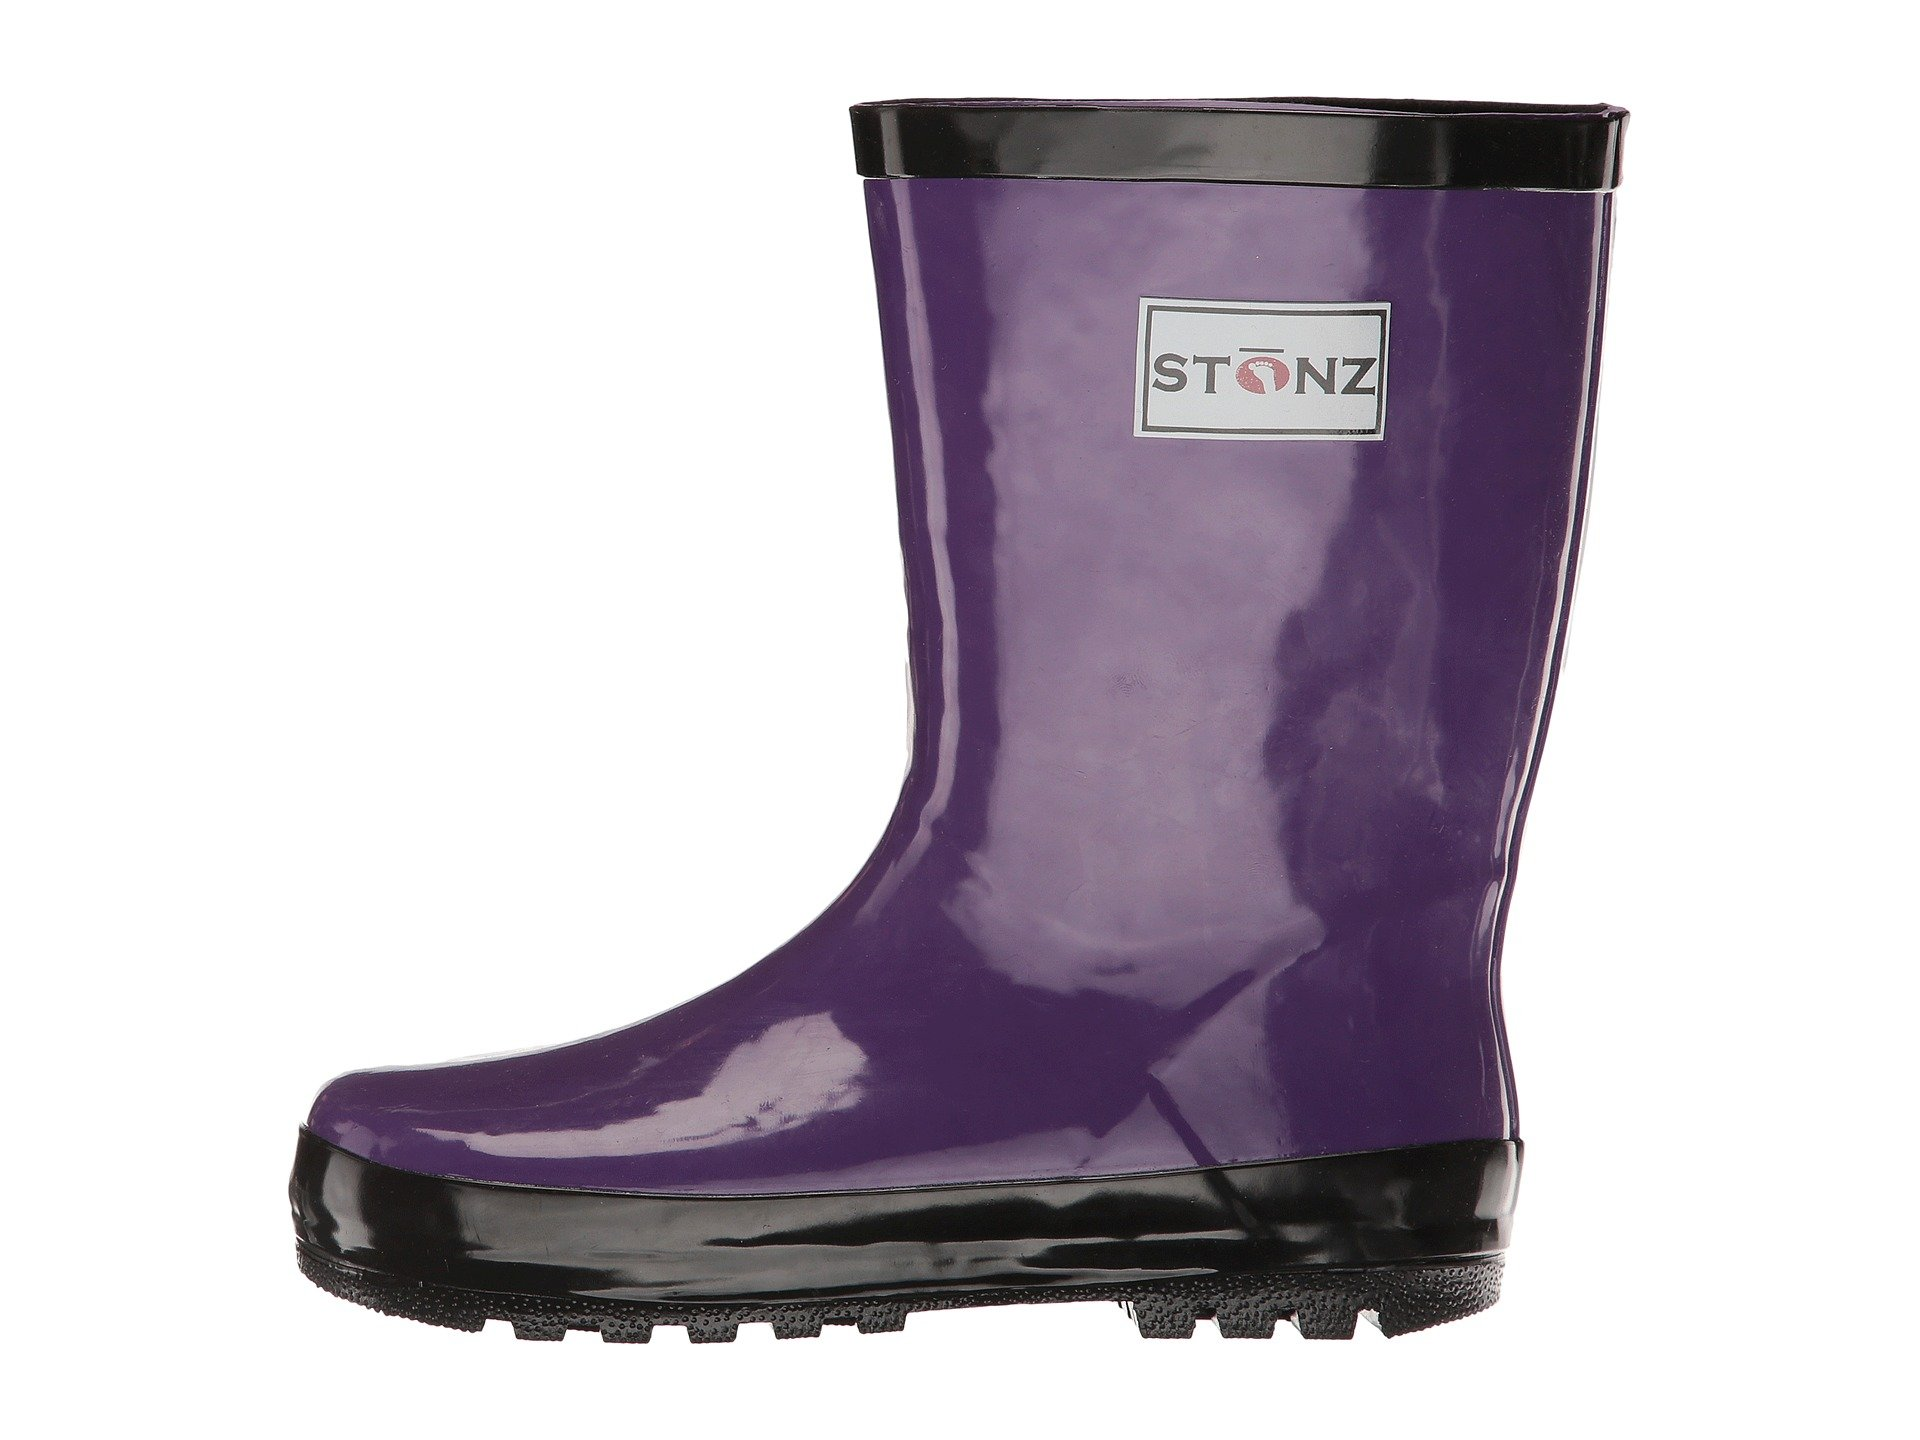 Stonz All-Natural Rubber Rainboot Rain Boots for Toddler Little Big Kid - Waterproof Colorful Warm - Summer Fall Winter - Purple, Size 1Y by Stonz (Image #3)